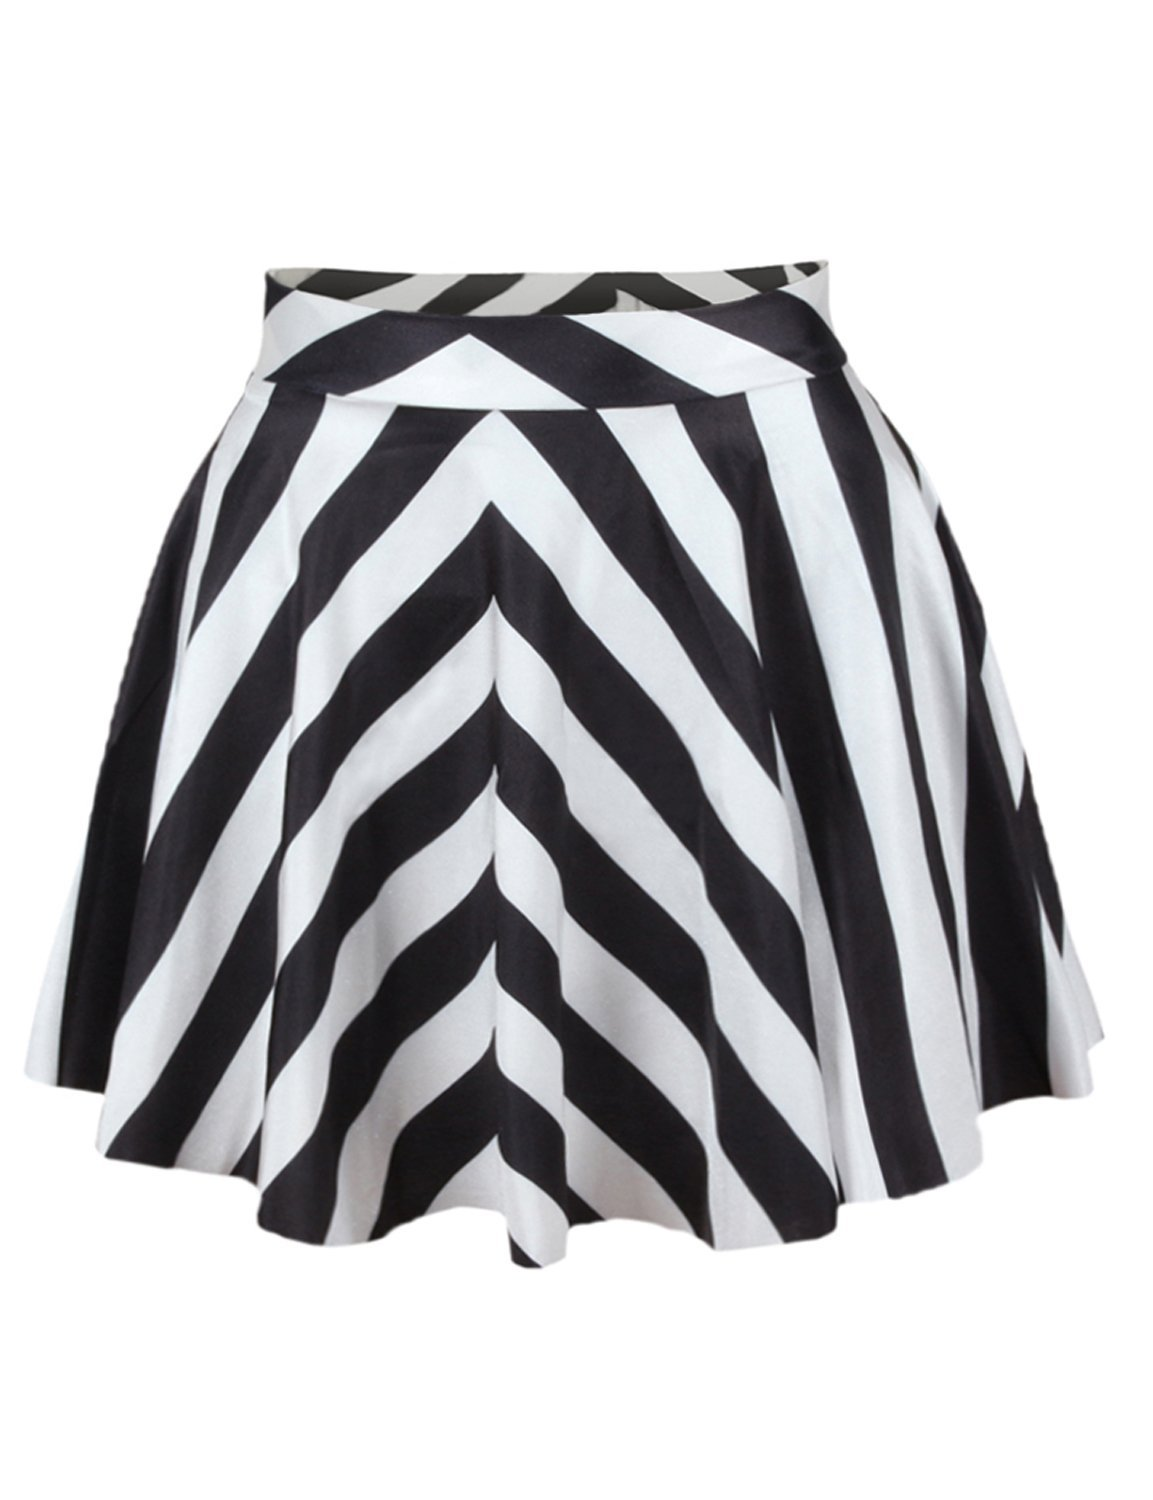 Abby Berny Girls Black White Striped Pattern High Waisted Pleated Short Skirts